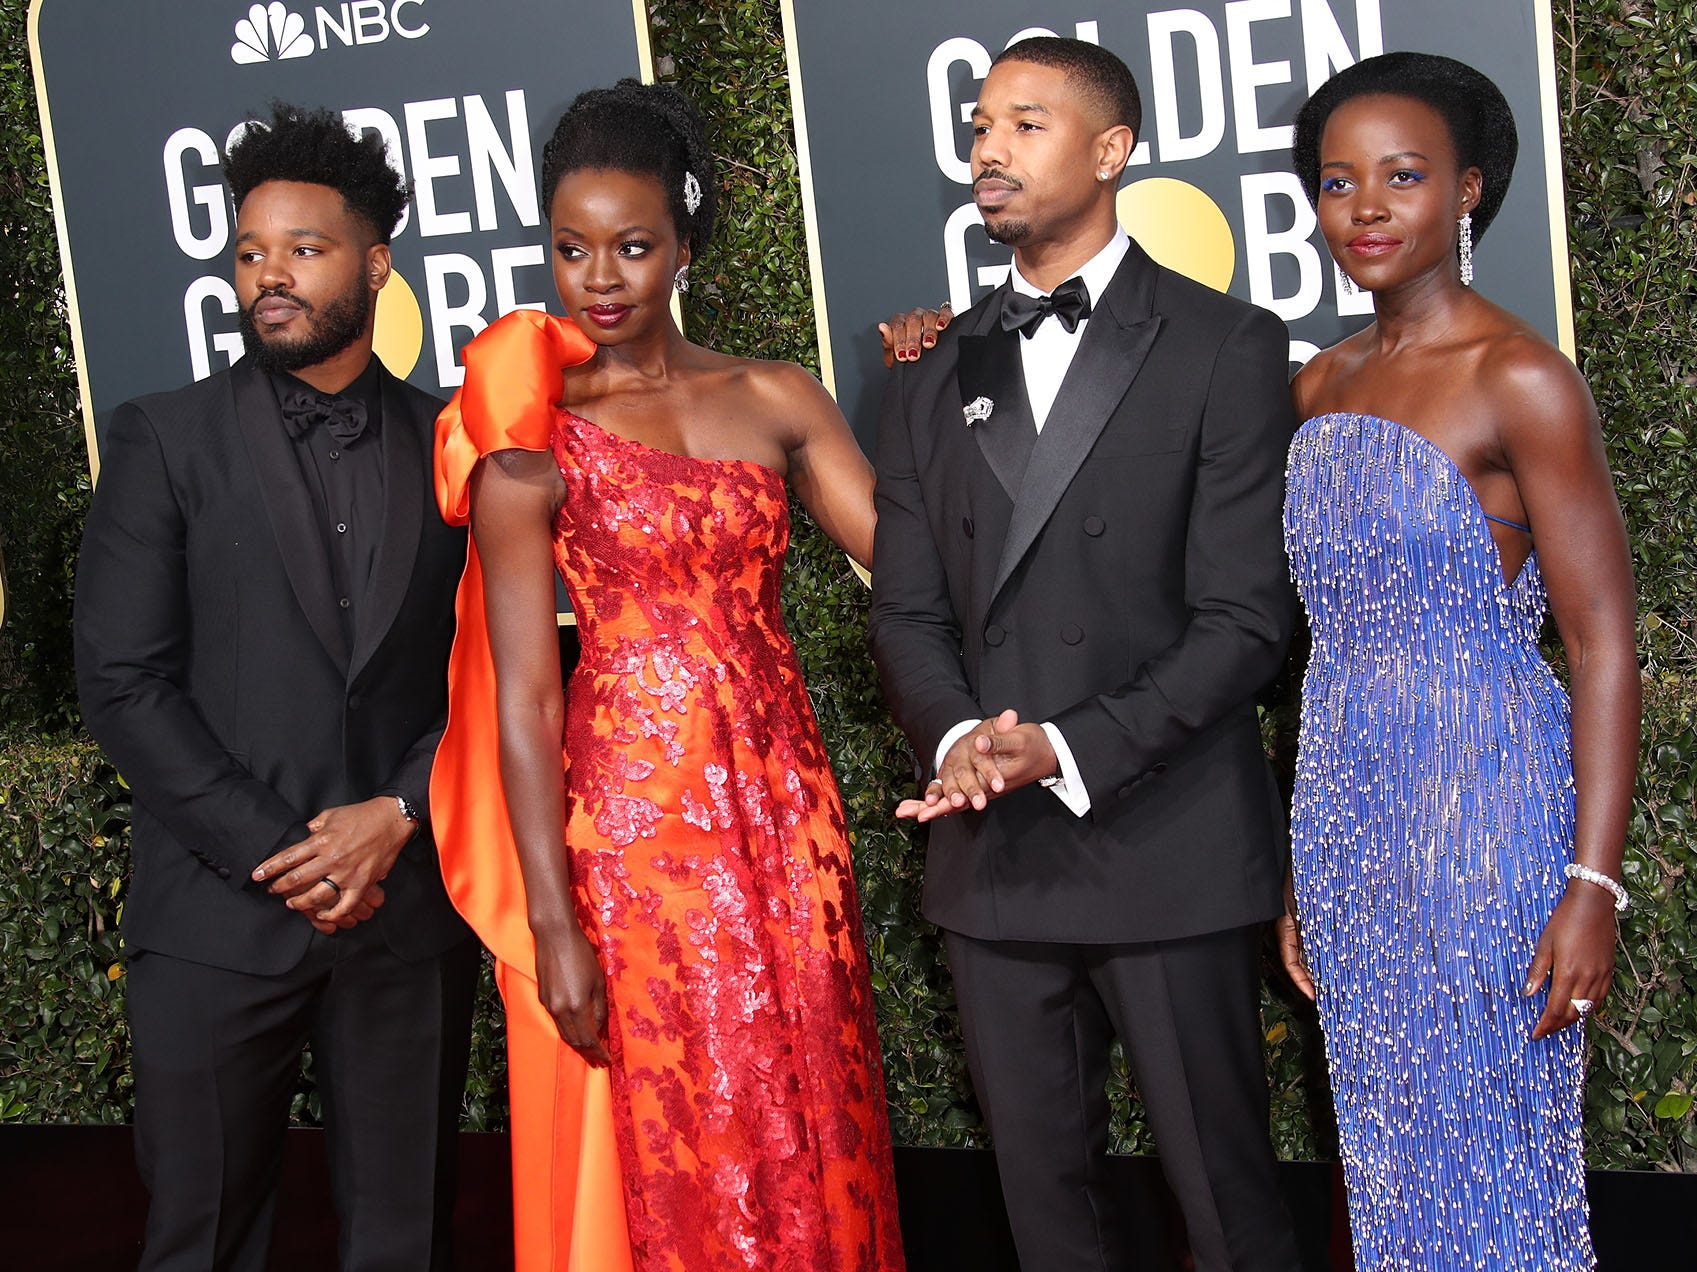 Ryan Coogler, left, Danai Gurira, Michael B. Jordan, and Lupita Nyong'o arrive at the 76th Golden Globe Awards at the Beverly Hilton.